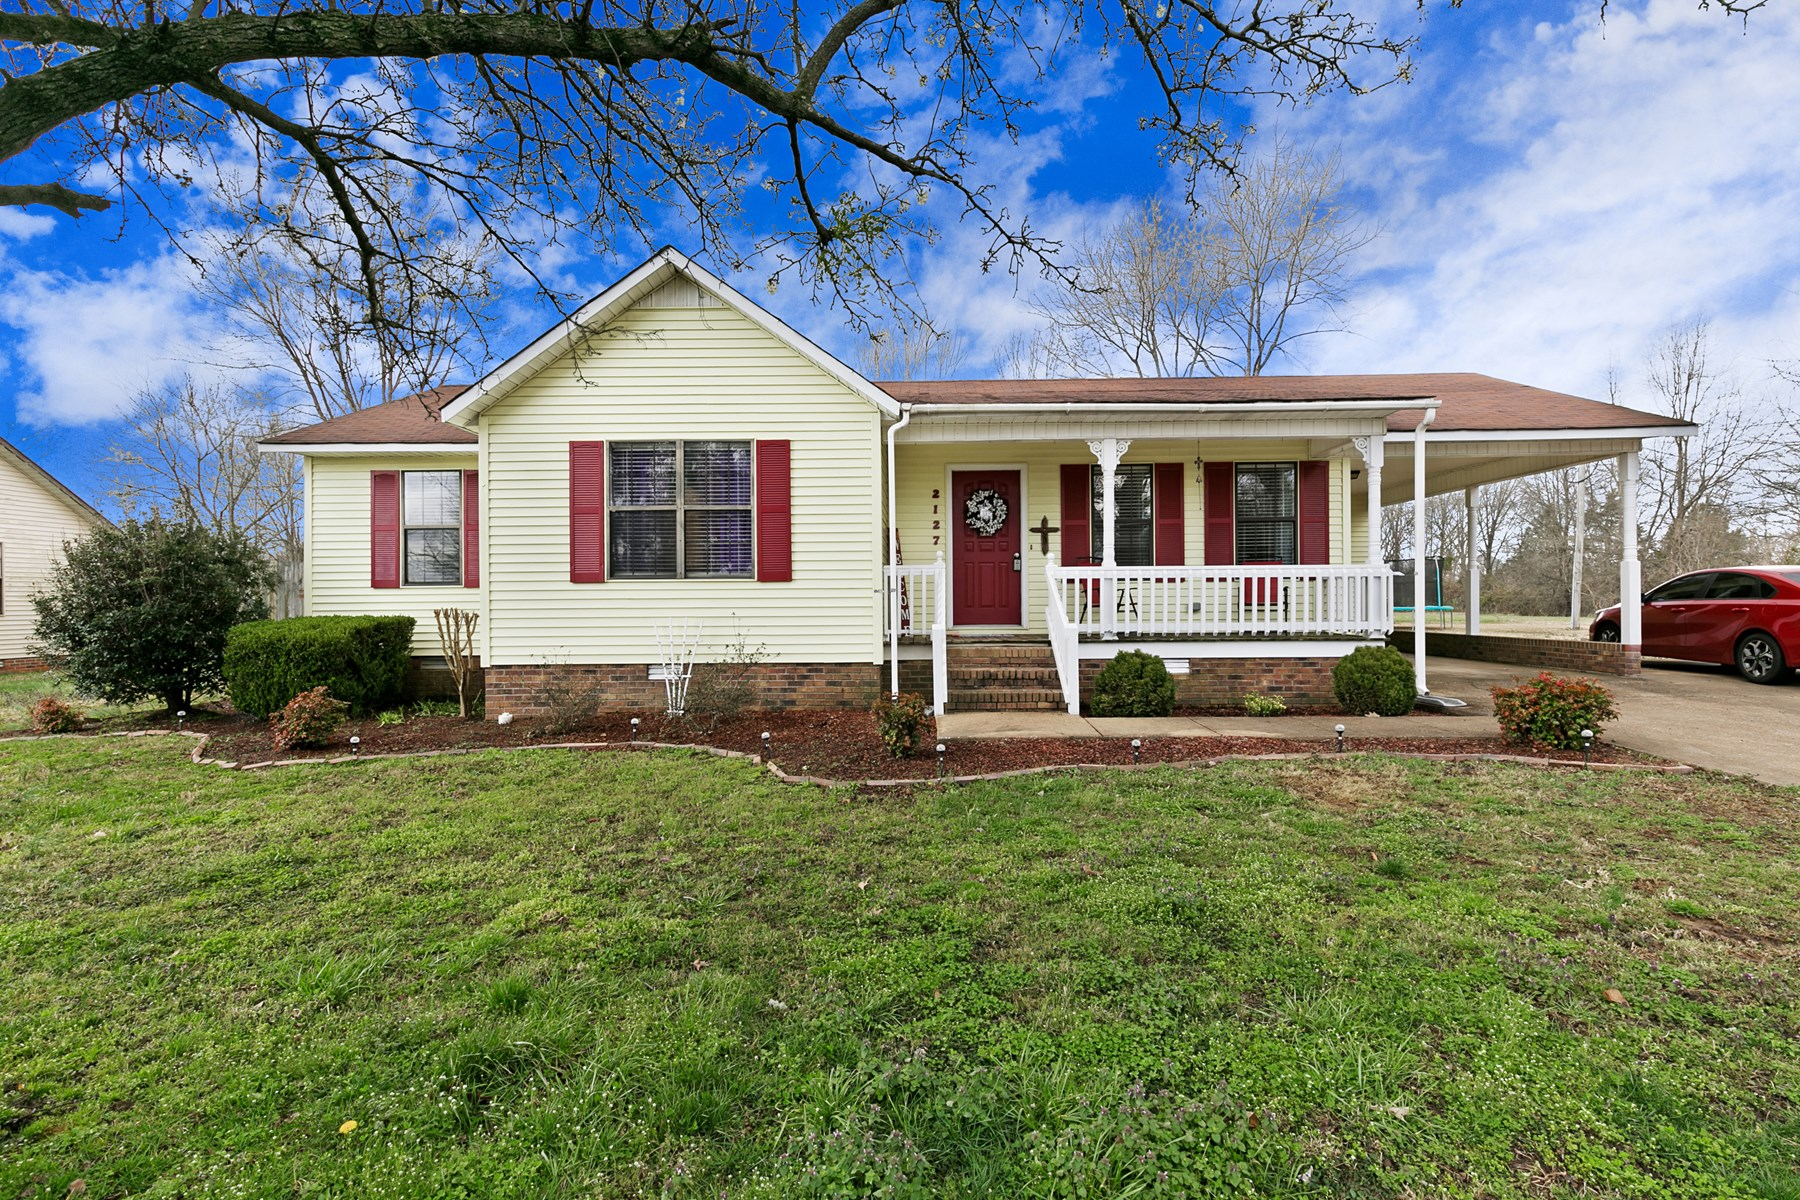 3BR / 2BA Home for Sale Near Schools in Milan, Tennessee